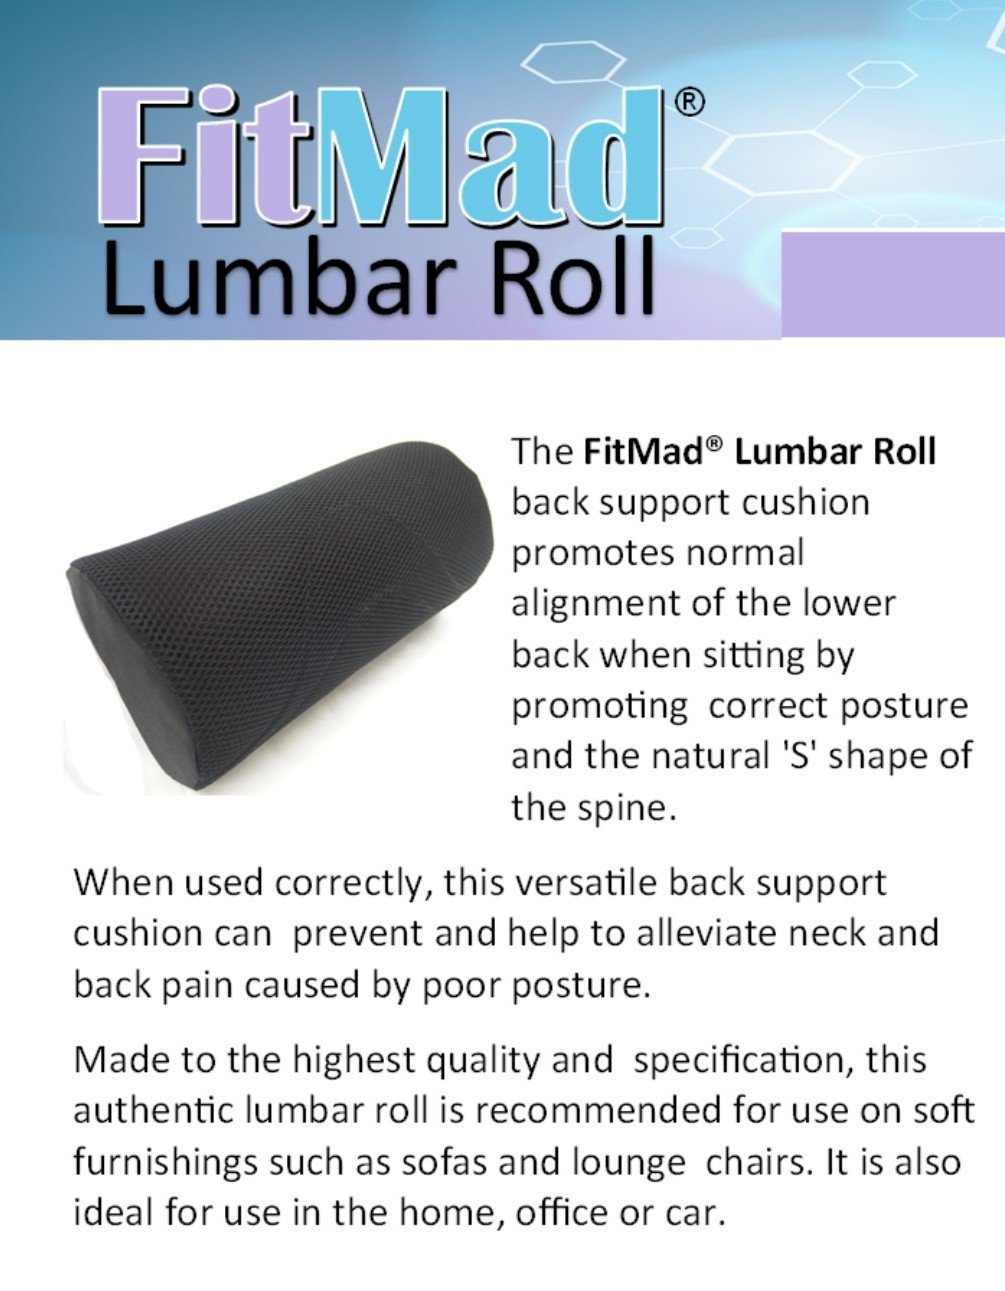 Original 4 Lumbar Roll (Heavy Density) - Helps Prevent Back Pain - Lower Back Support Cushion for your Home, Office Chair and Car - NEW Ergonomic ...